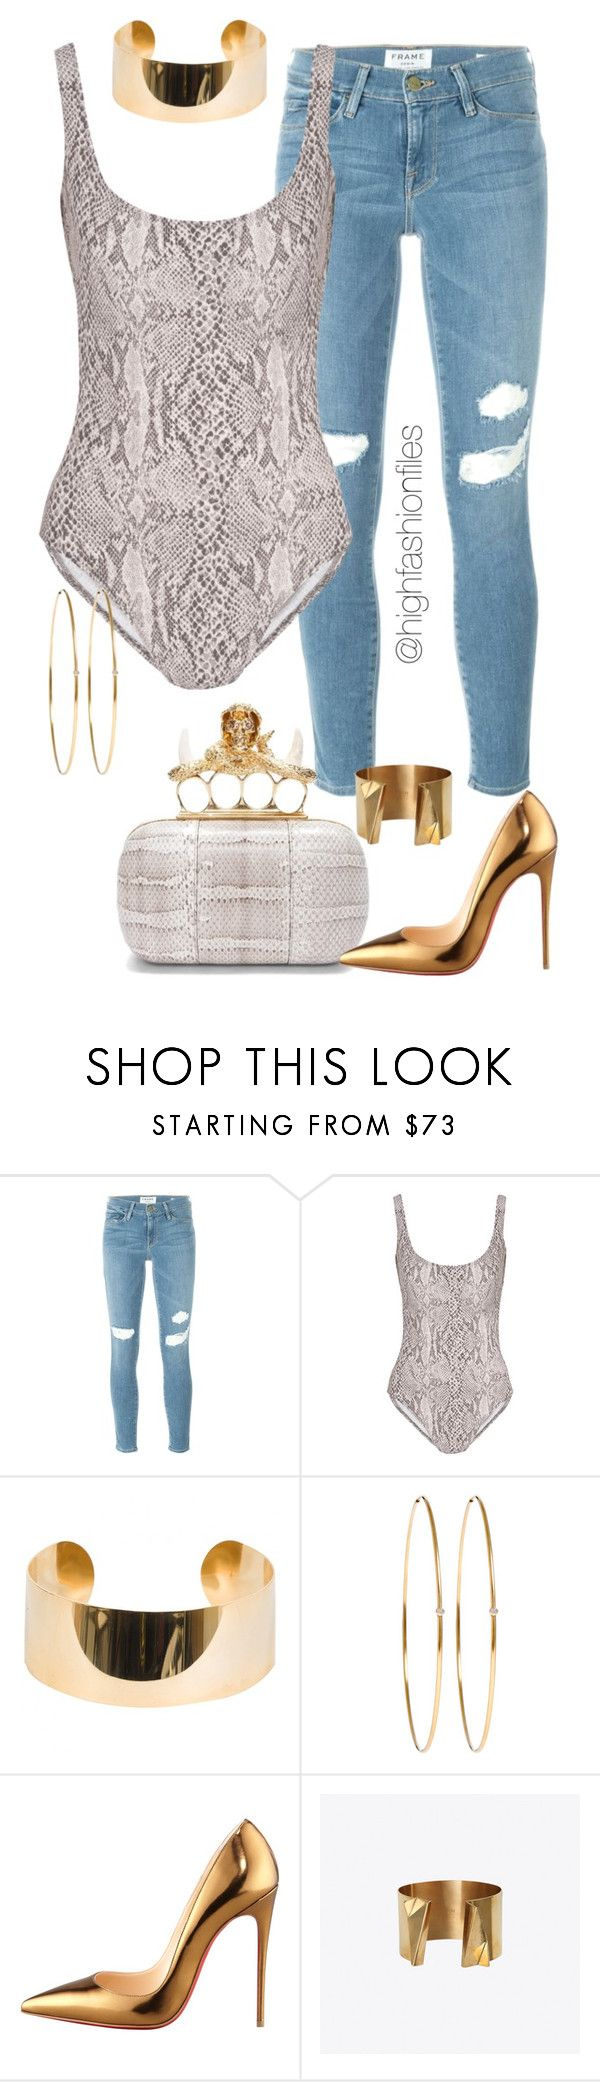 """""""Gold & Print"""" by highfashionfiles ❤ liked on Polyvore featuring Frame Denim, Norma Kamali, Alexander McQueen, Elie Saab, Jennifer Meyer Jewelry, Christian Louboutin and Angela Gomez"""